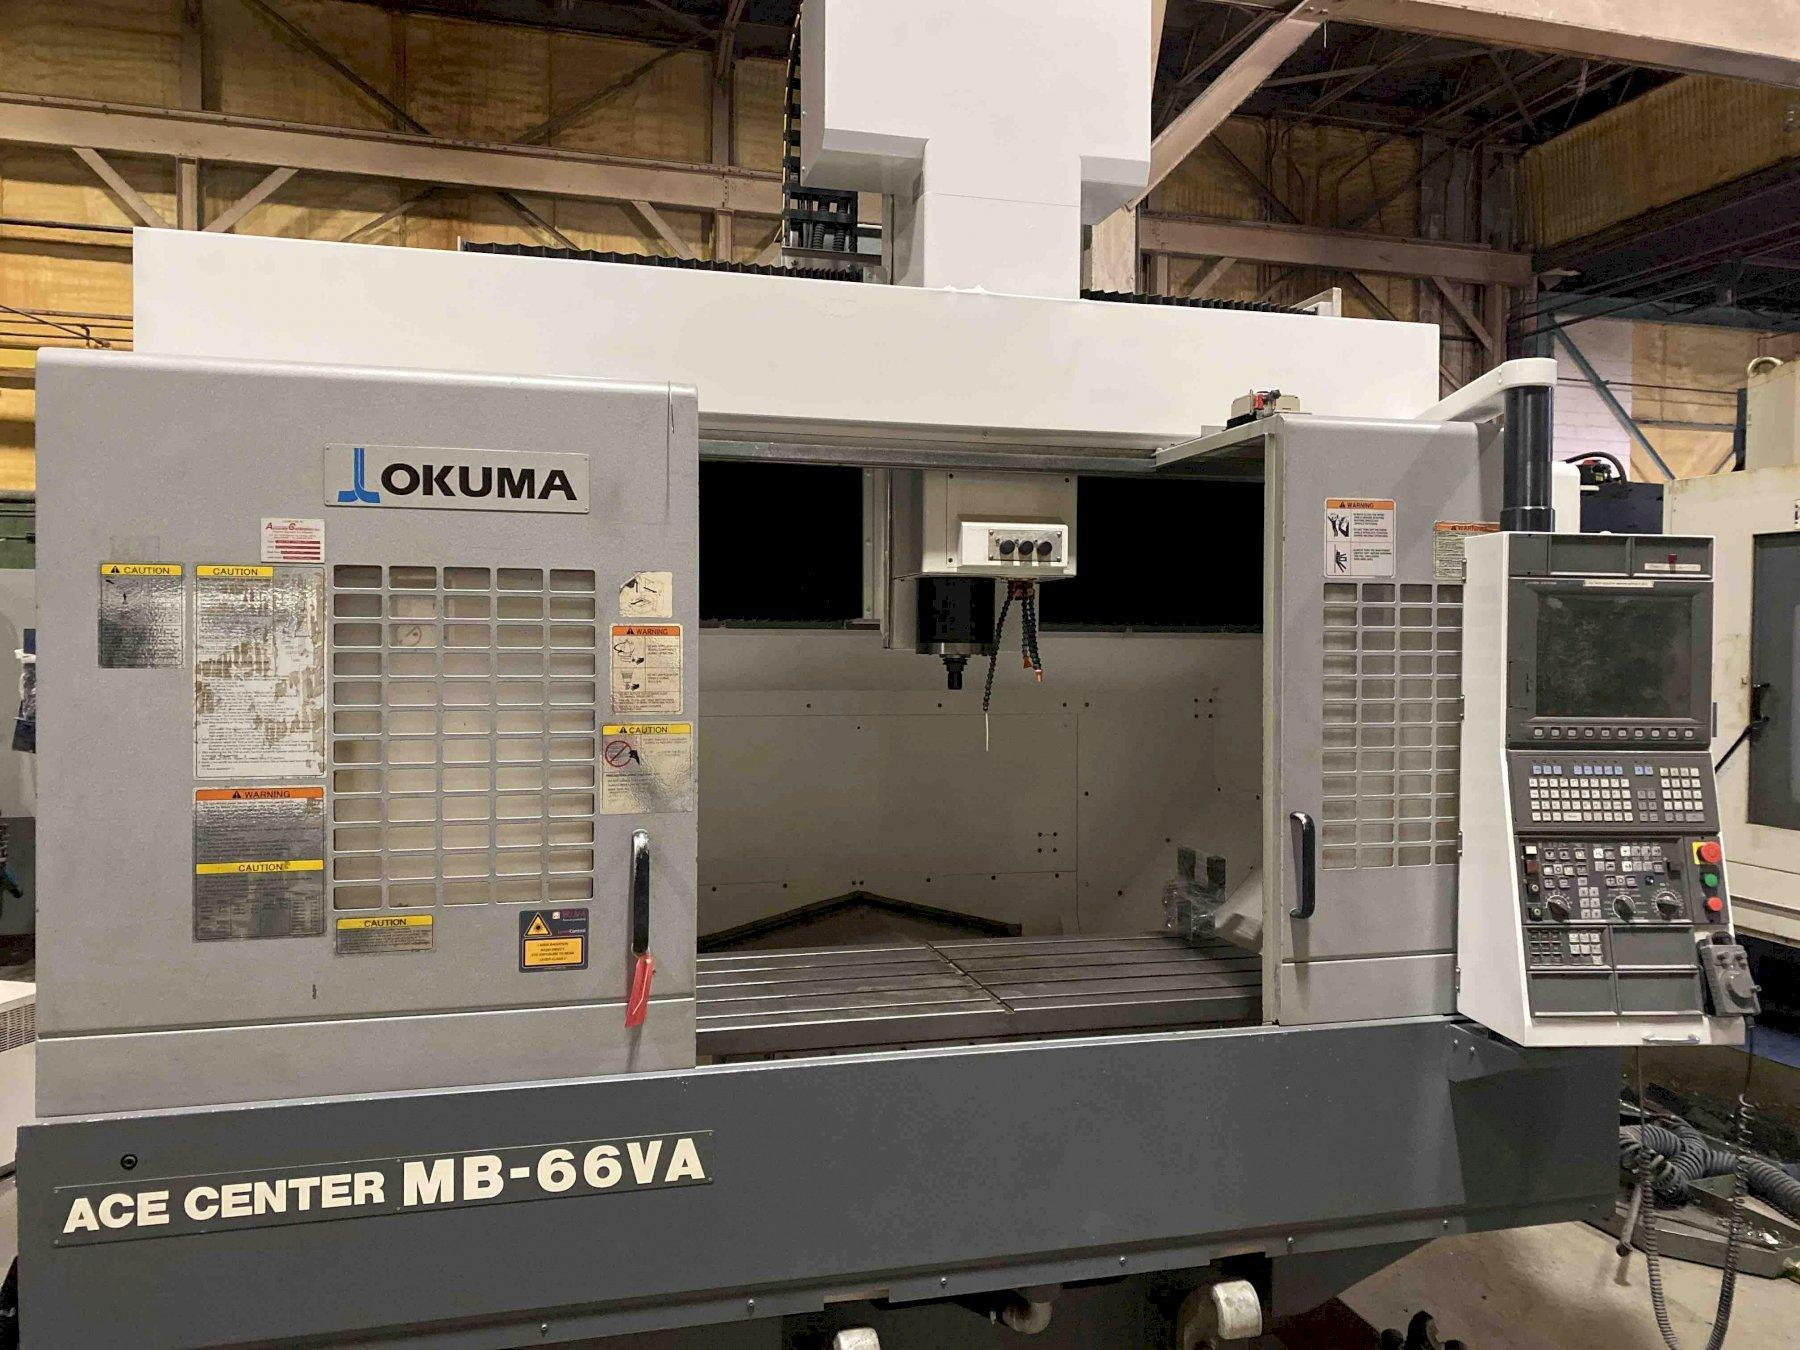 Okuma Ace Center MB66VA CNC Vertical Machining Center, OSP P200M, 59